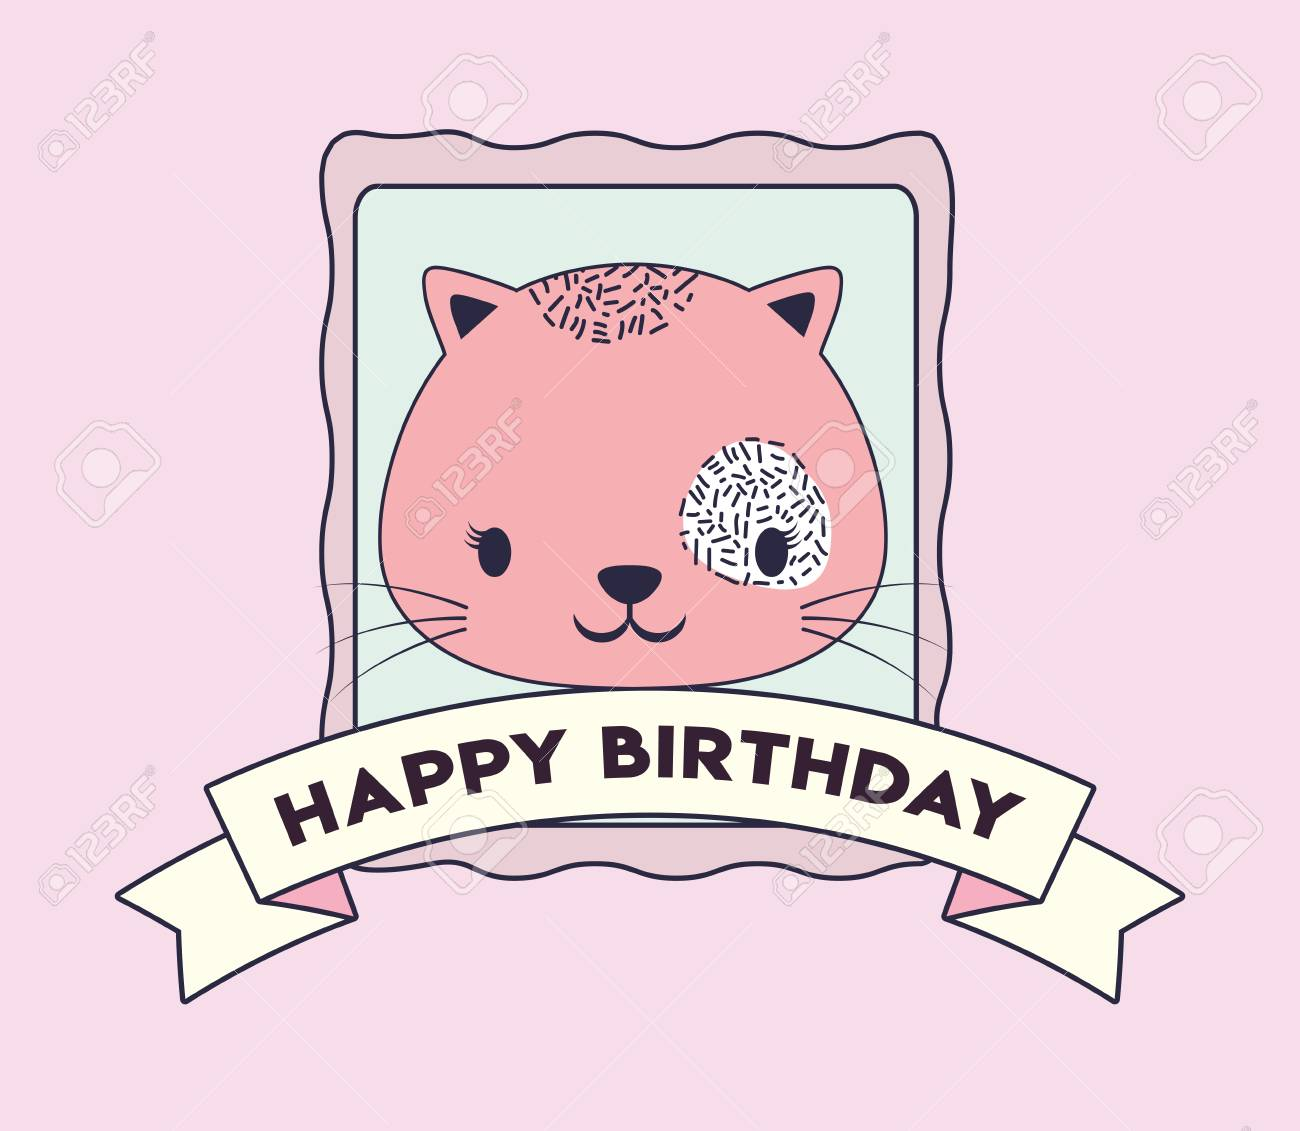 Happy Birthday Design With Cute Cat Icon And Decorative Ribbon